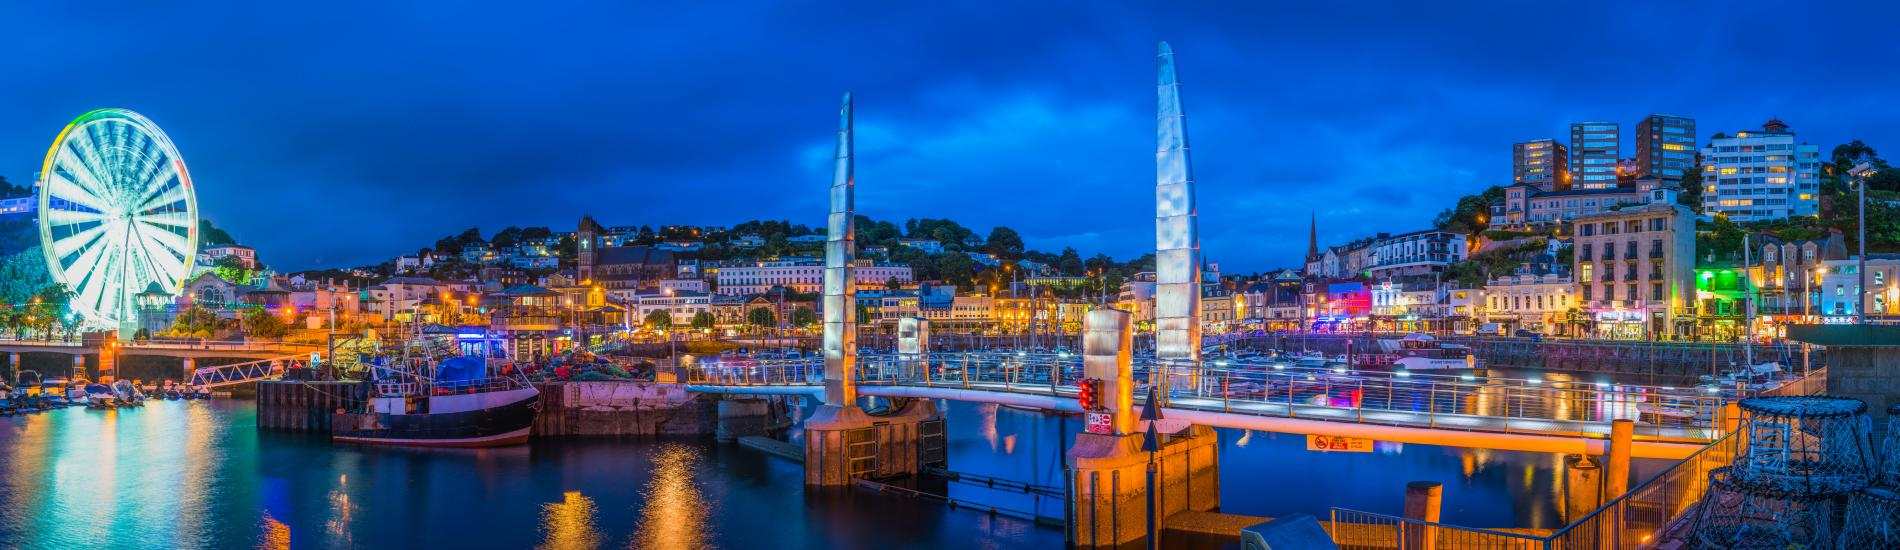 Torquay Nightlife